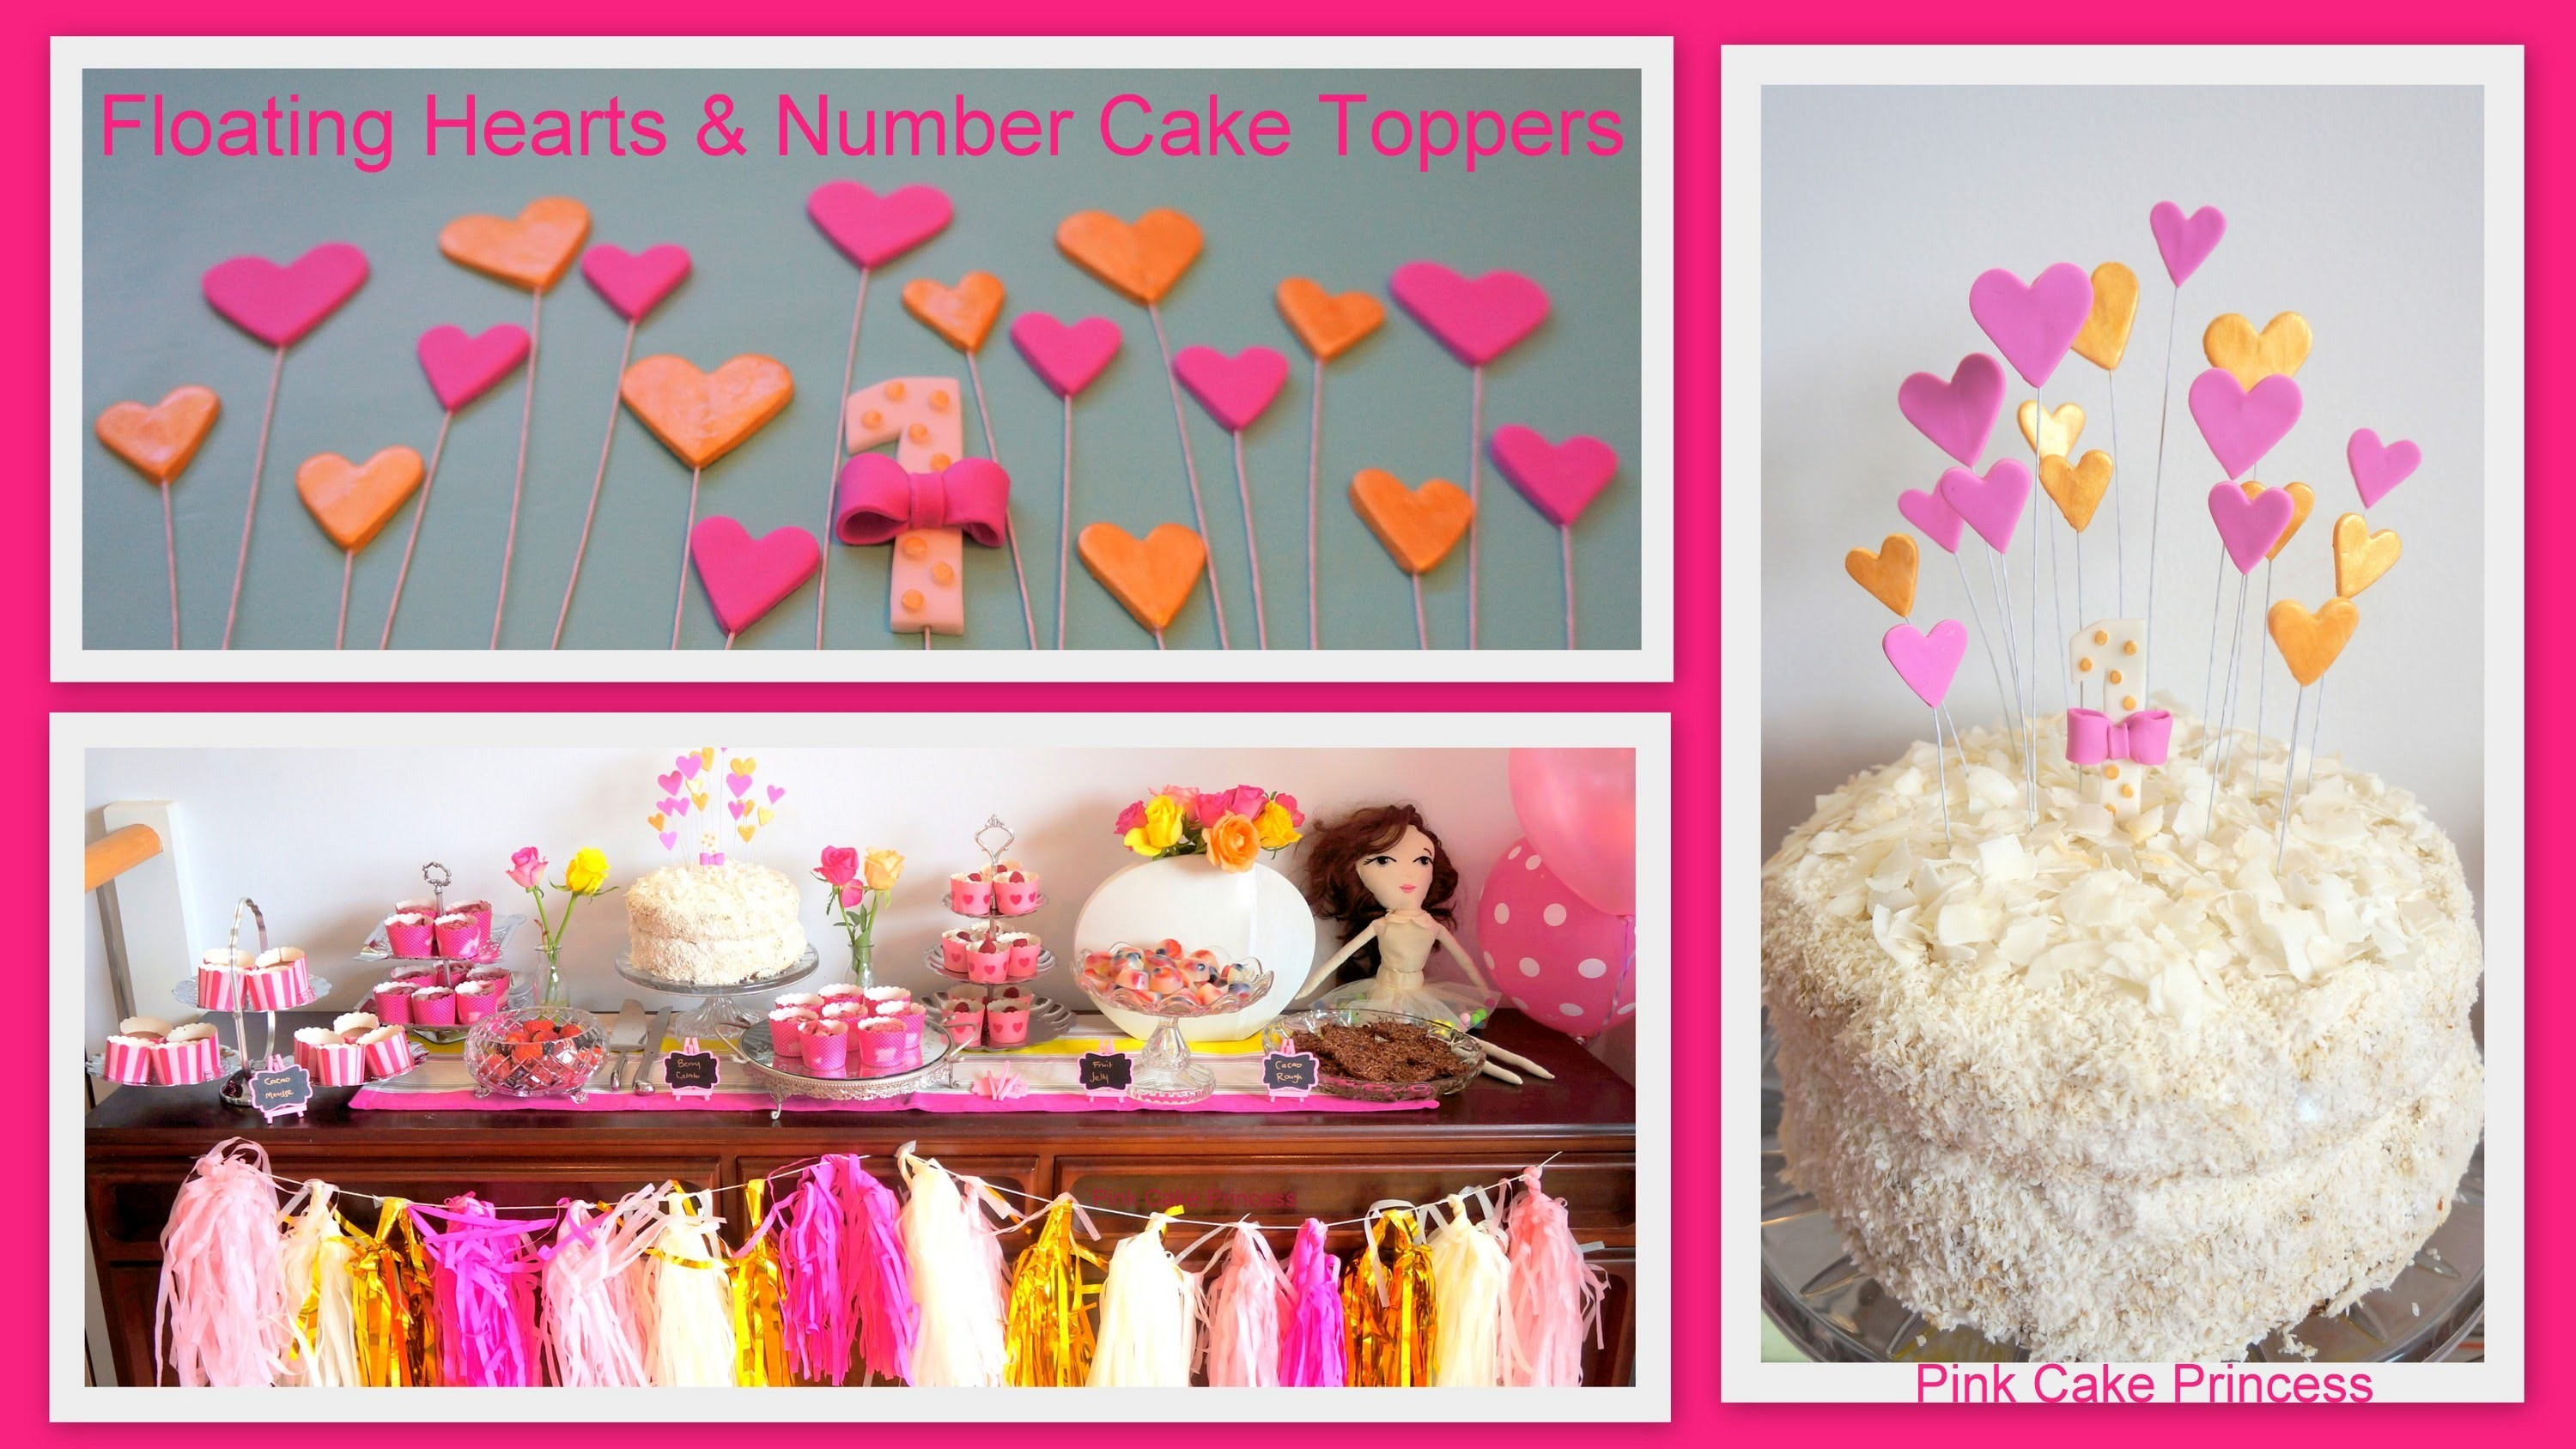 How to Make Floating Hearts & Number 1 Cake Toppers Decorations